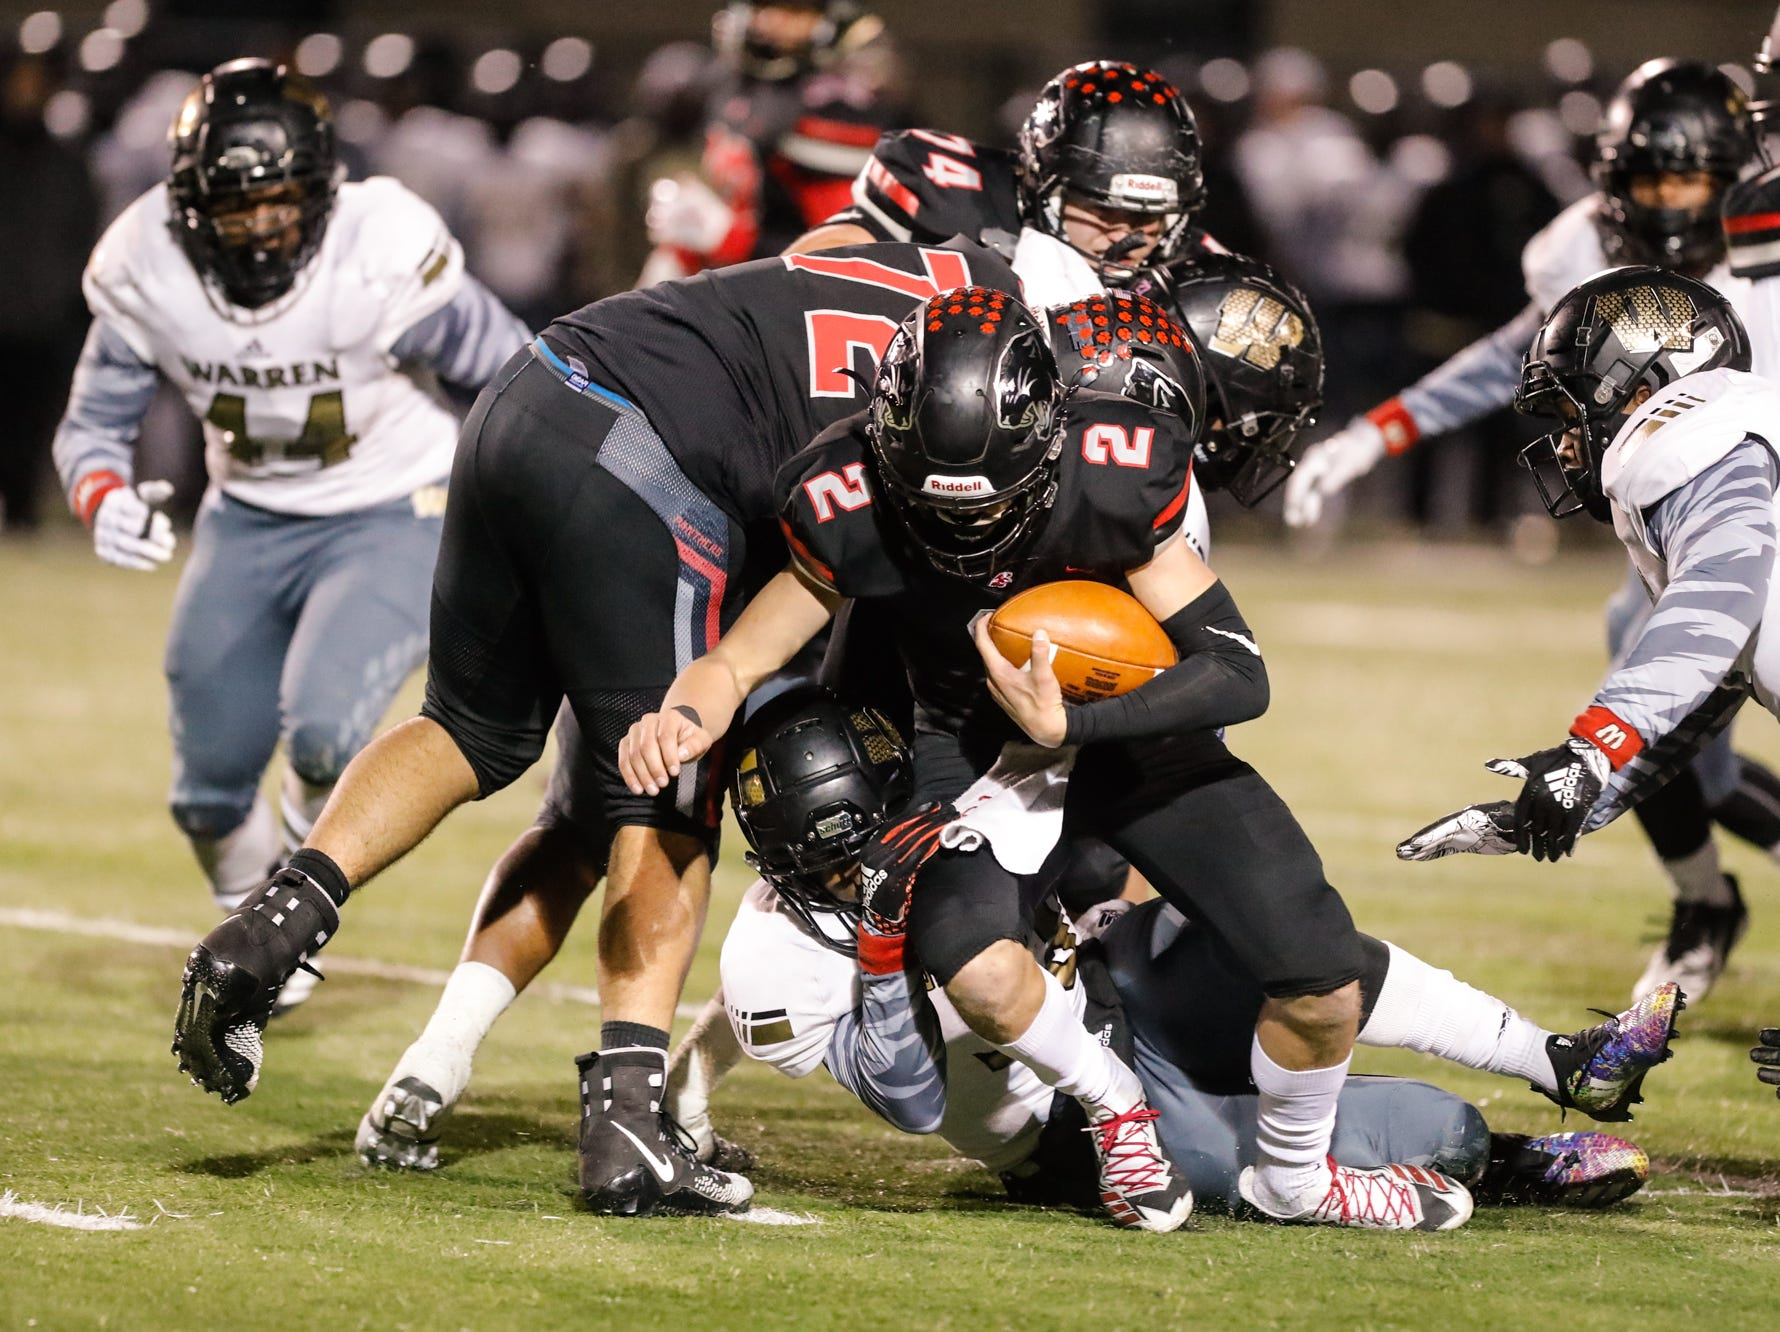 North Central High School Panther's Liam Thompson (2), avoids a tackle during a regional finals game against the Warren Central High School Warriors at North Central High School on Friday, Nov. 9, 2018.